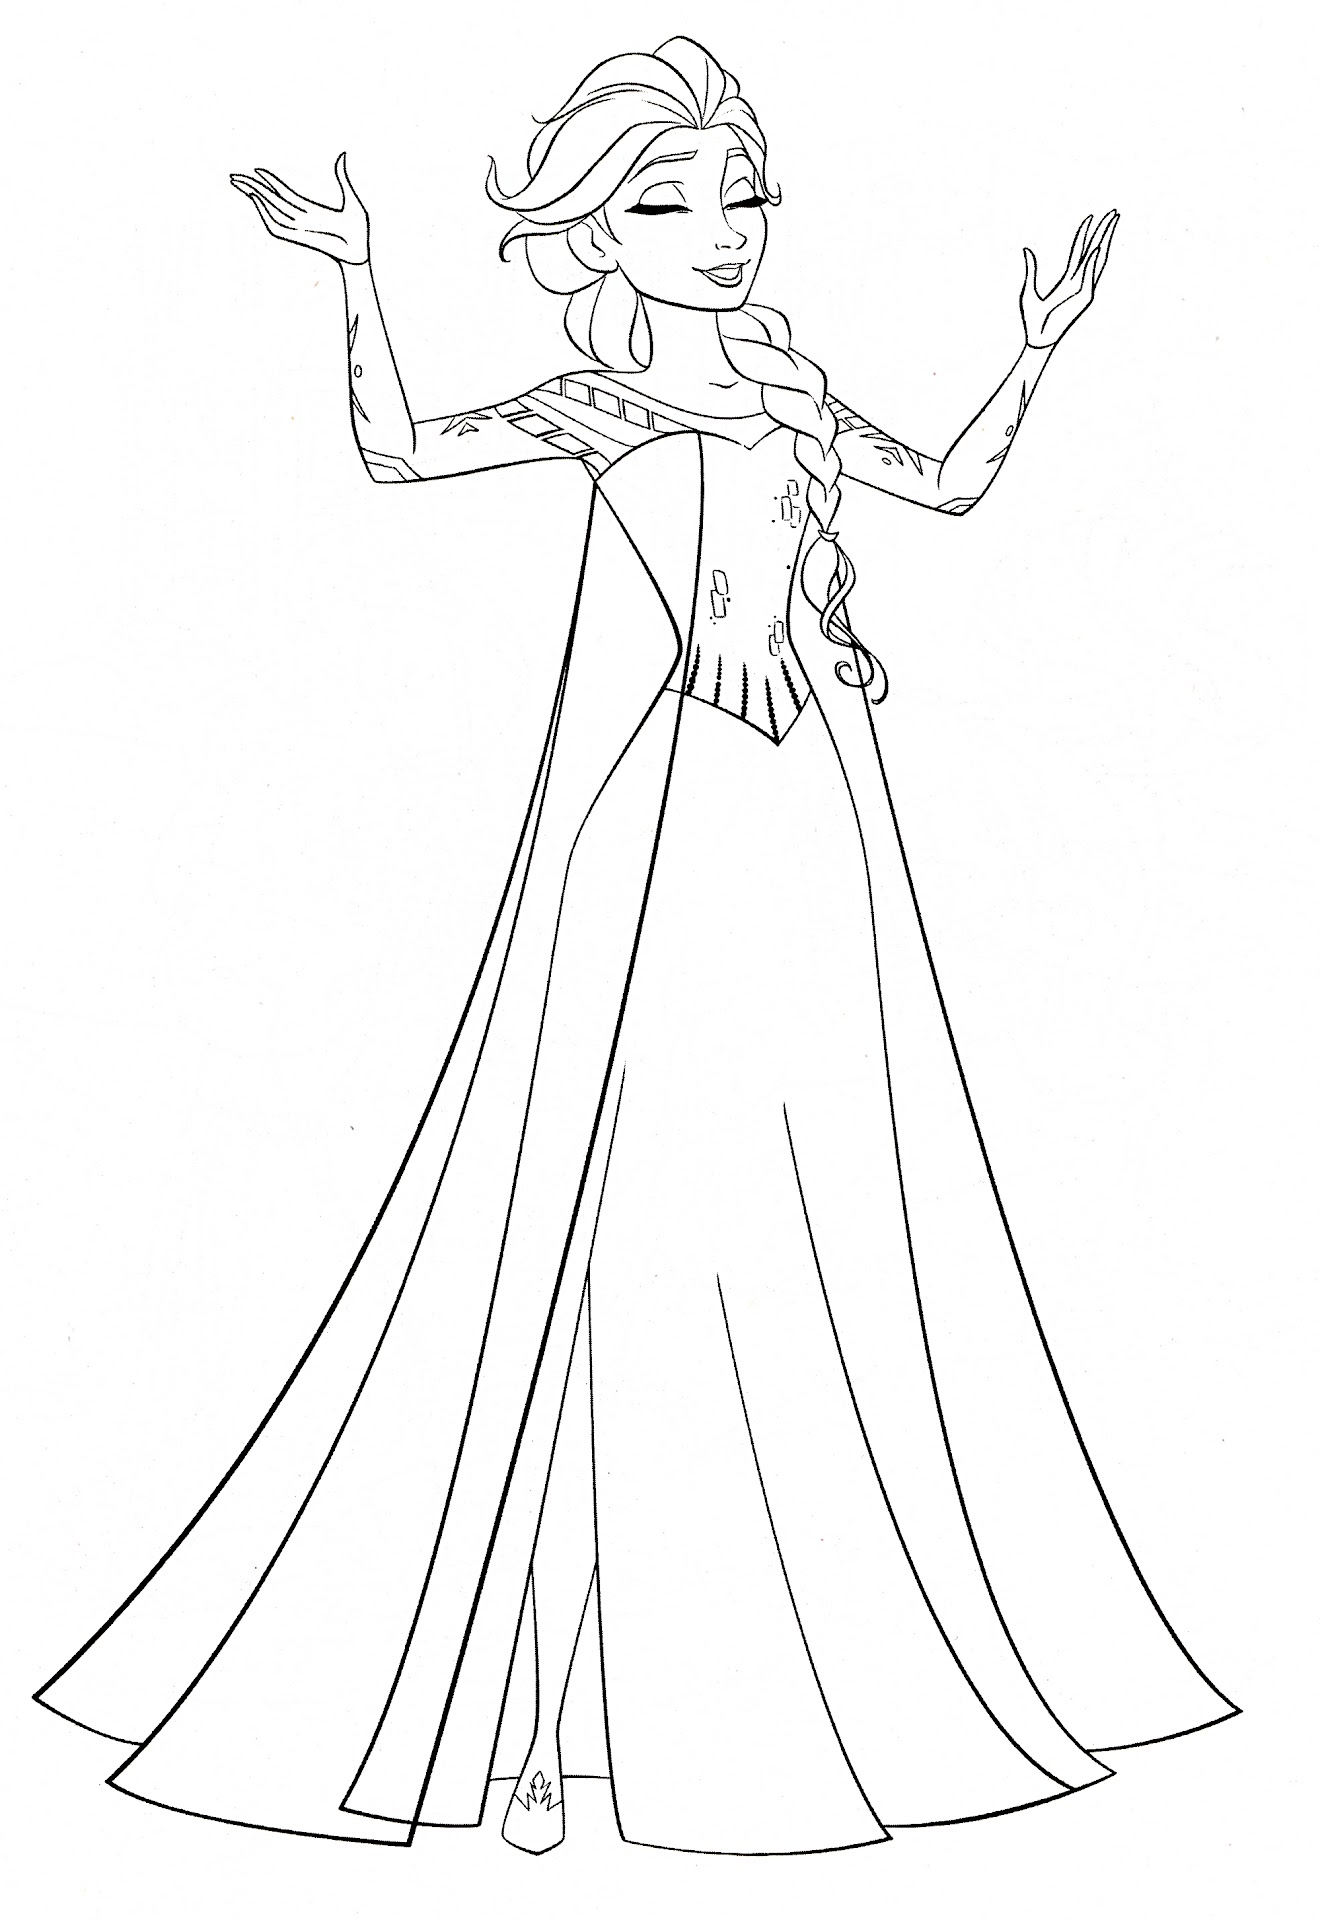 Walt Disney Coloring Page Of Queen Elsa From Frozen Hd Wallpaper And Background Photos Pages For Fans